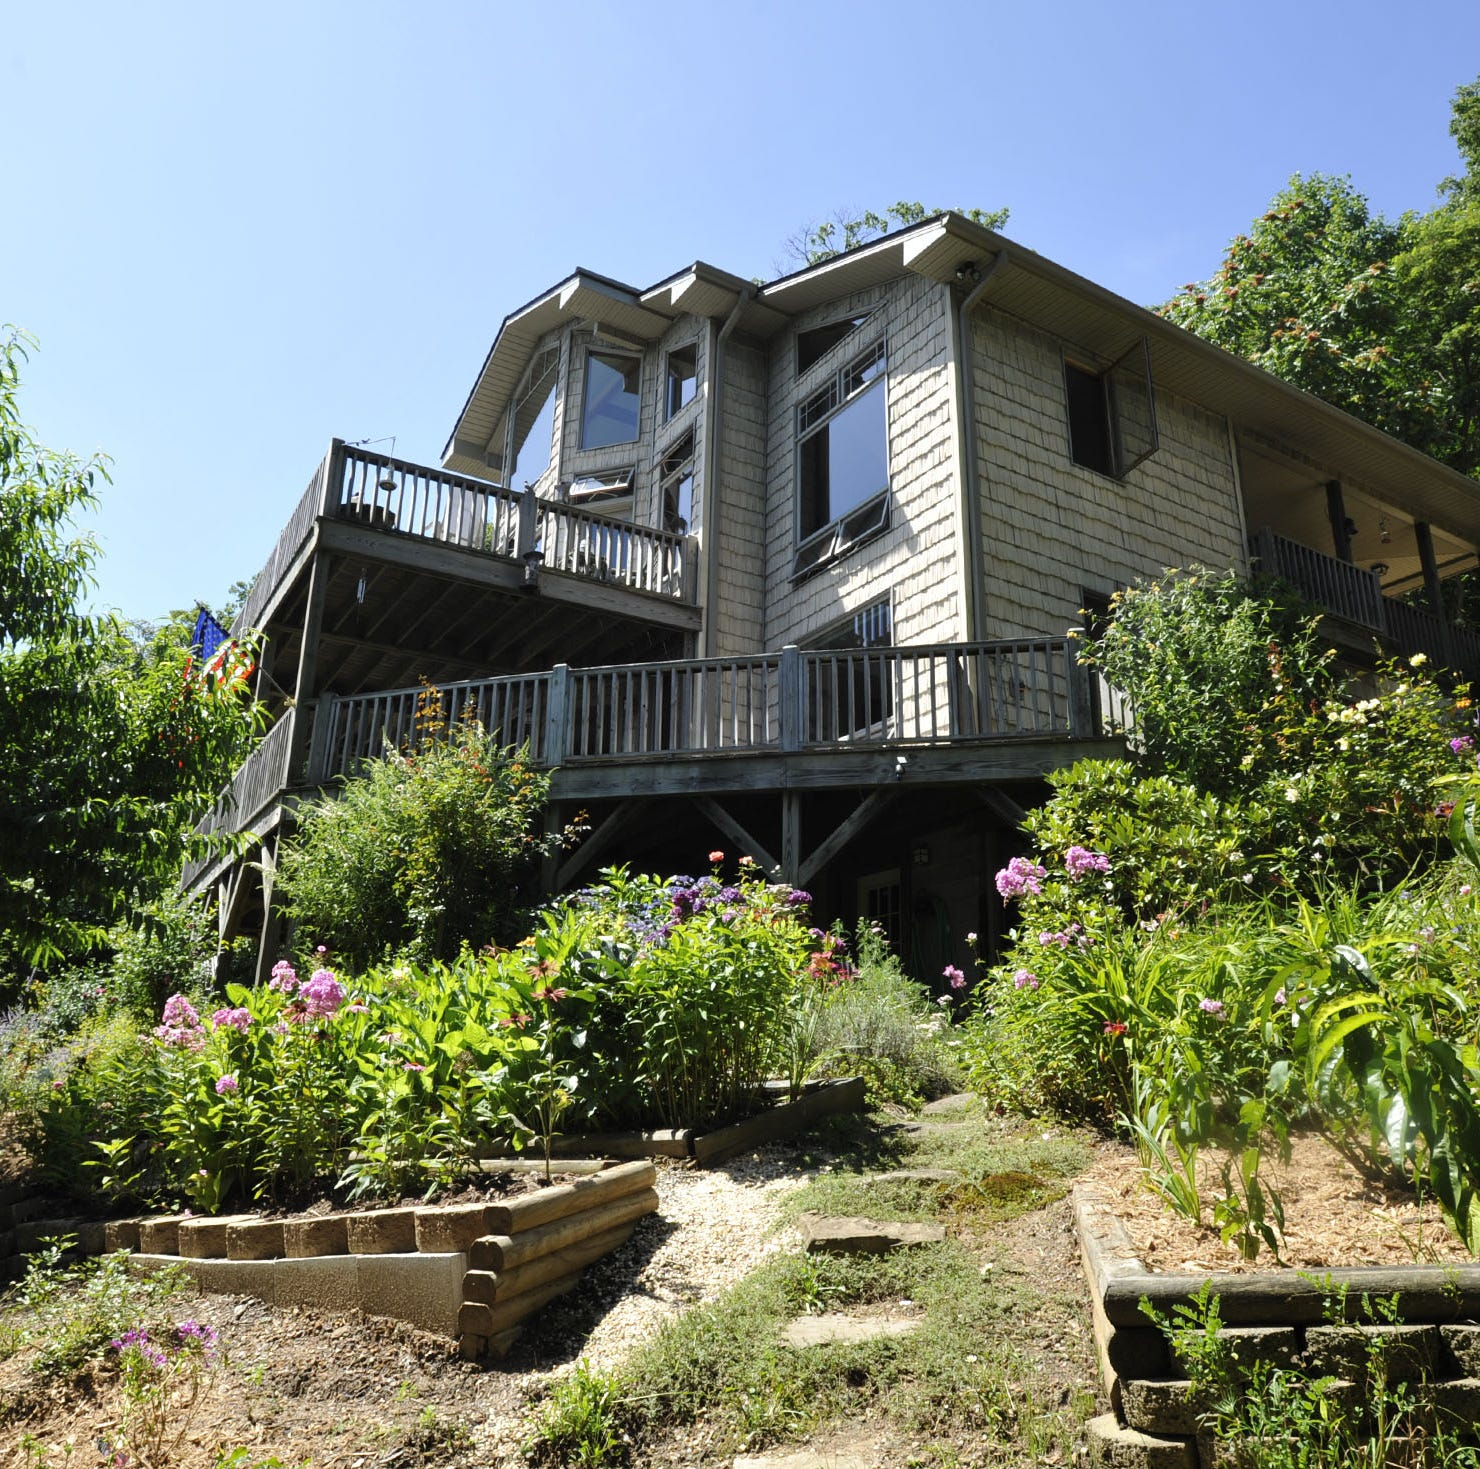 Home of the Week: The Brookers' in Weaverville